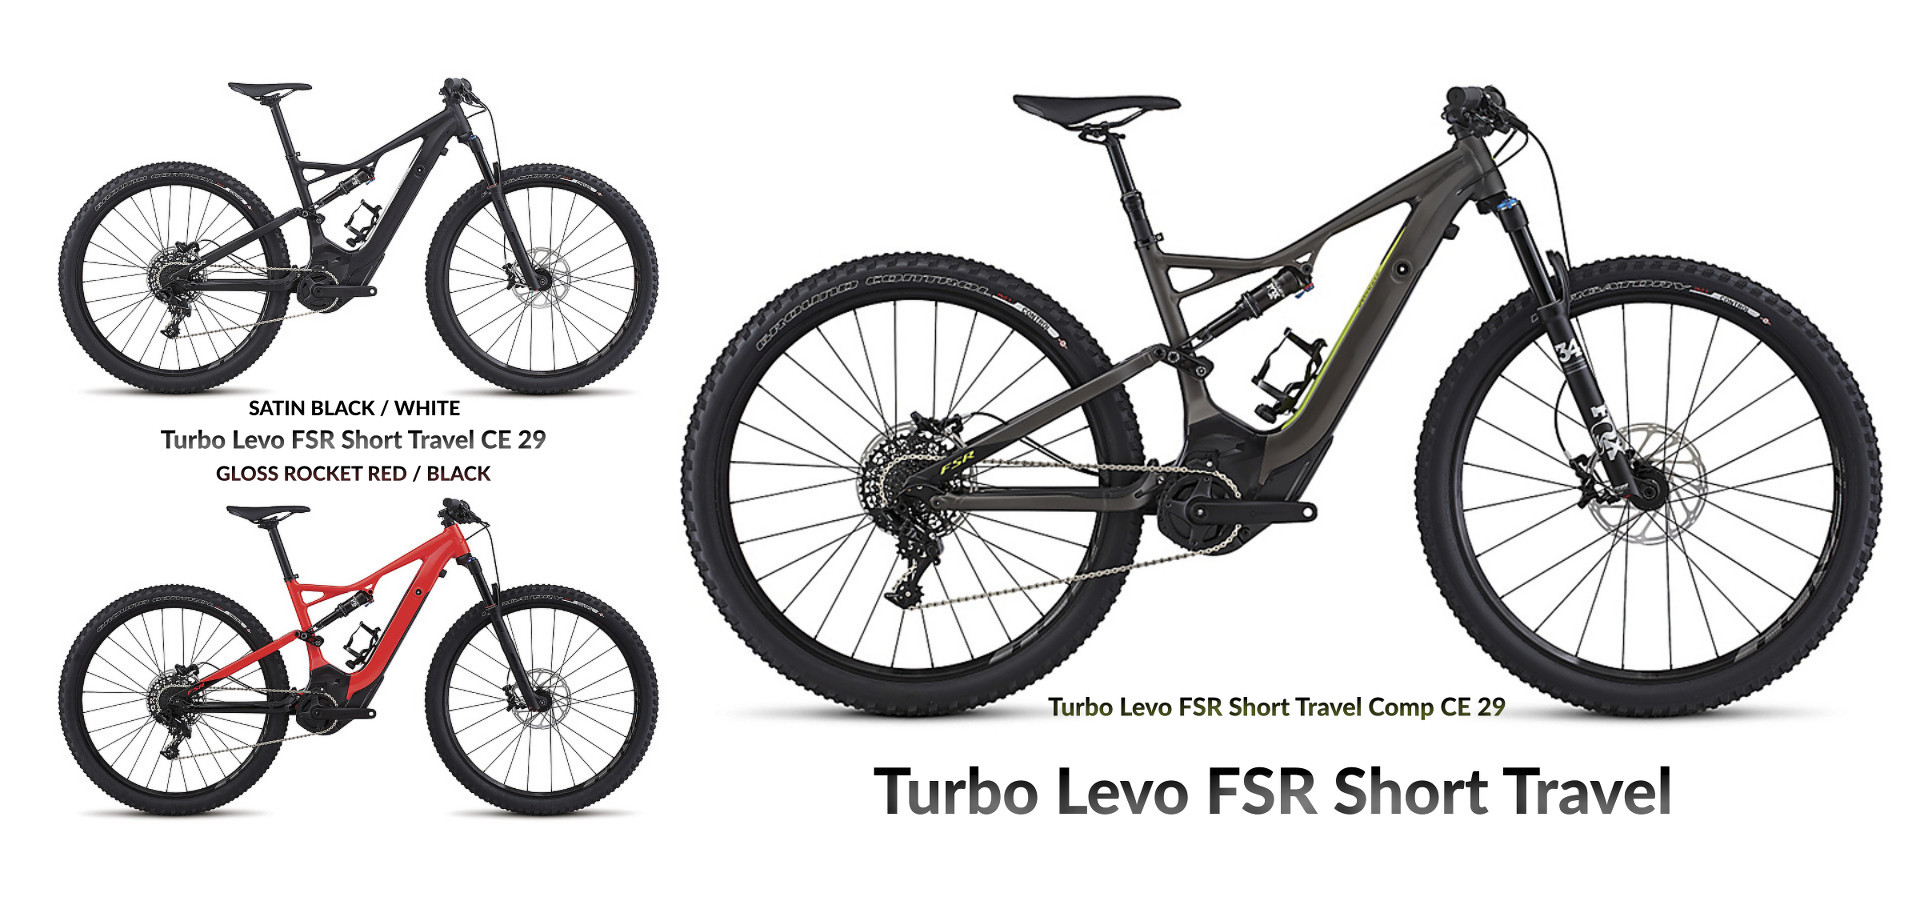 2017 Specialized Turbo Levo Short Travel Modelle